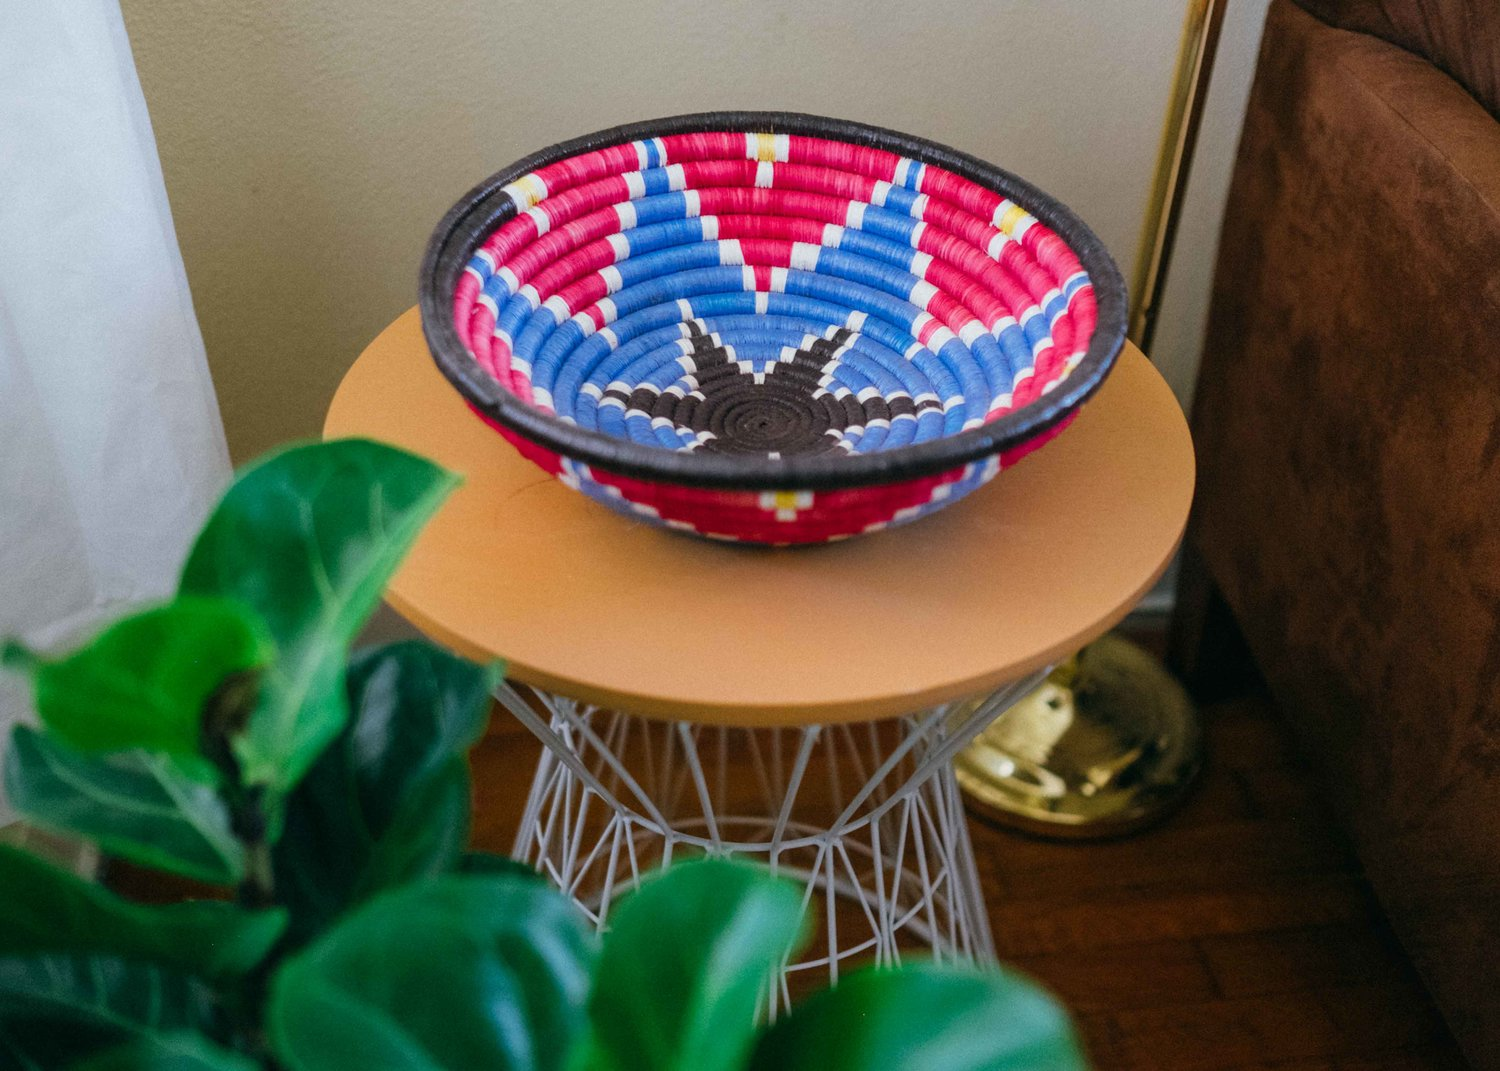 Dancilla Basket, $55 - With its happy, vibrant colors, the Dancilla basket is definitely a personal favorite. Each hand-made basket is unique and will brighten up any room it's in!